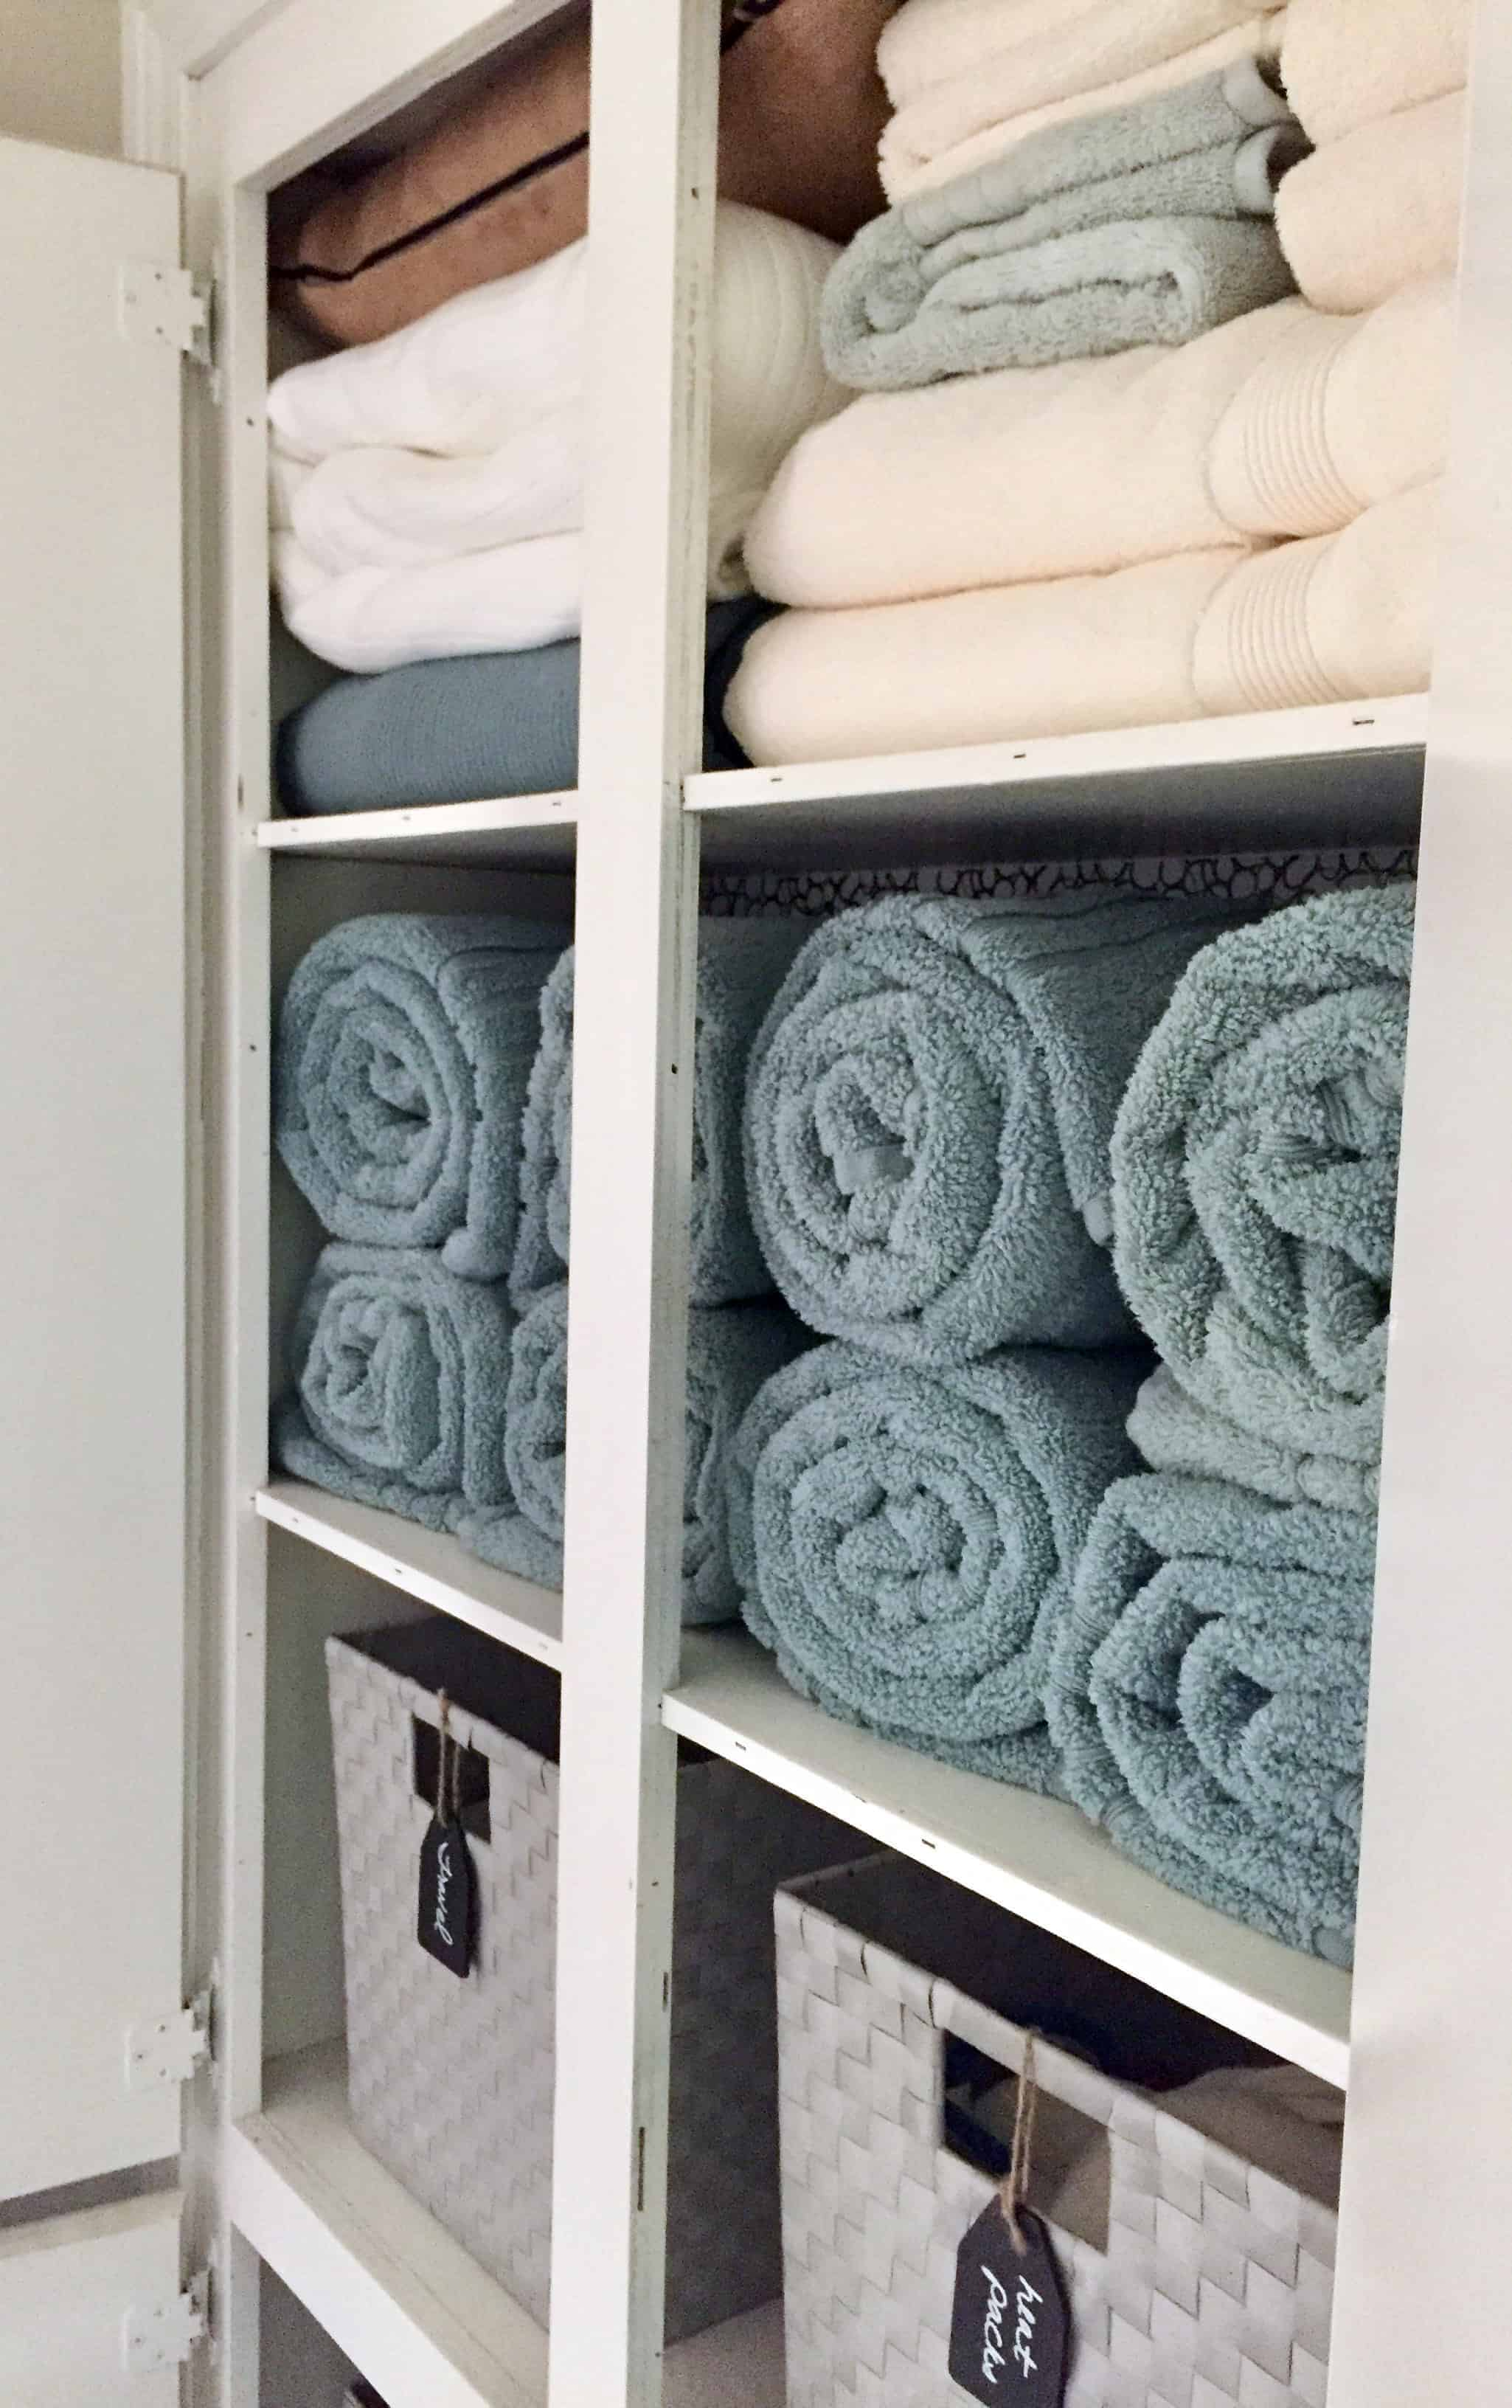 Welcome To Our Linen Closetu2026.or Should I Say Our Everything Closet. I Think  Iu0027ve Mentioned Before That We Live In A Small Ranch Stye Bungalow, A Cute  Little ...